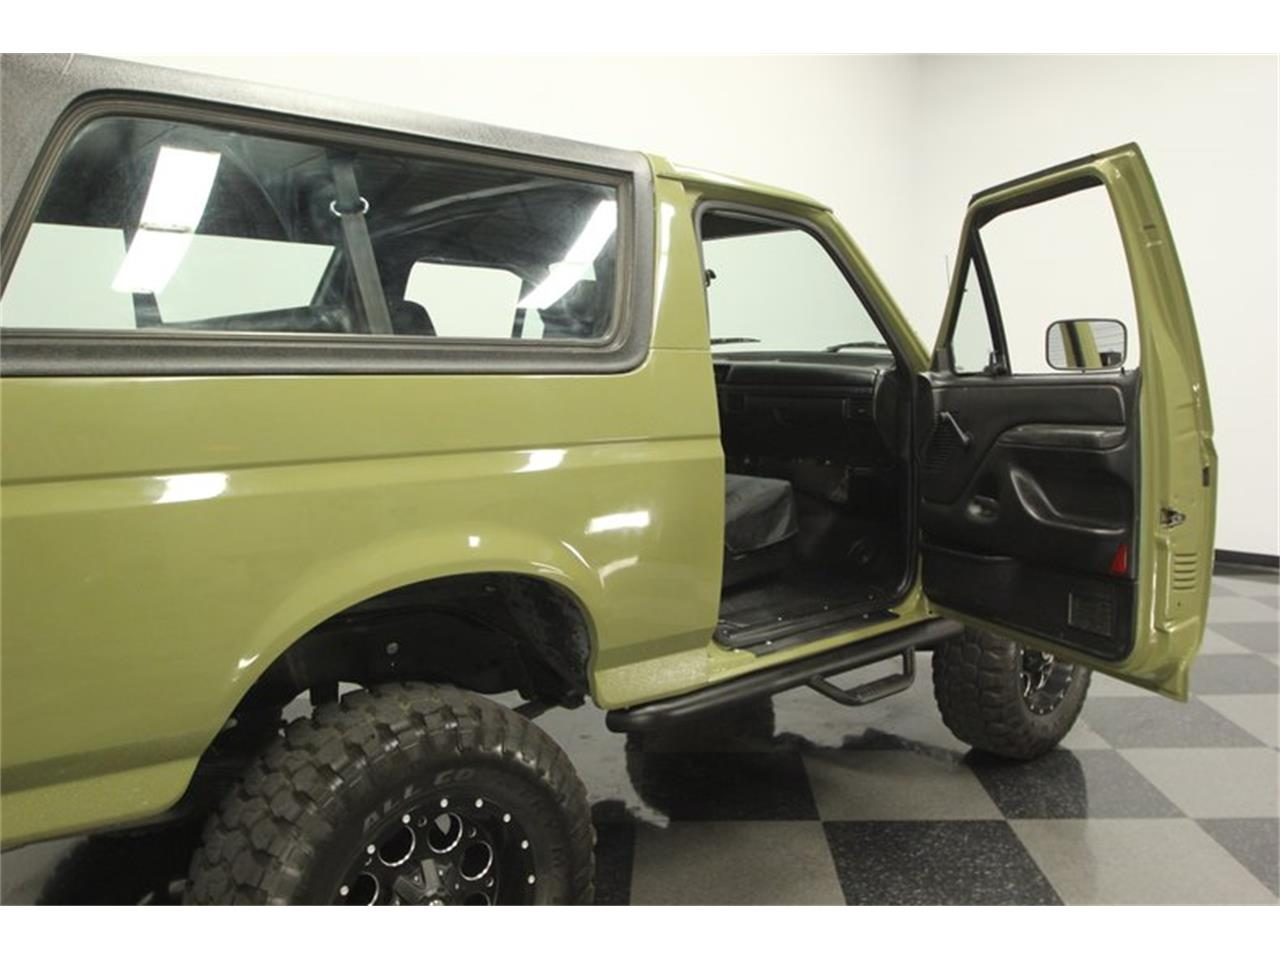 1996 Ford Bronco for sale in Lutz, FL – photo 57